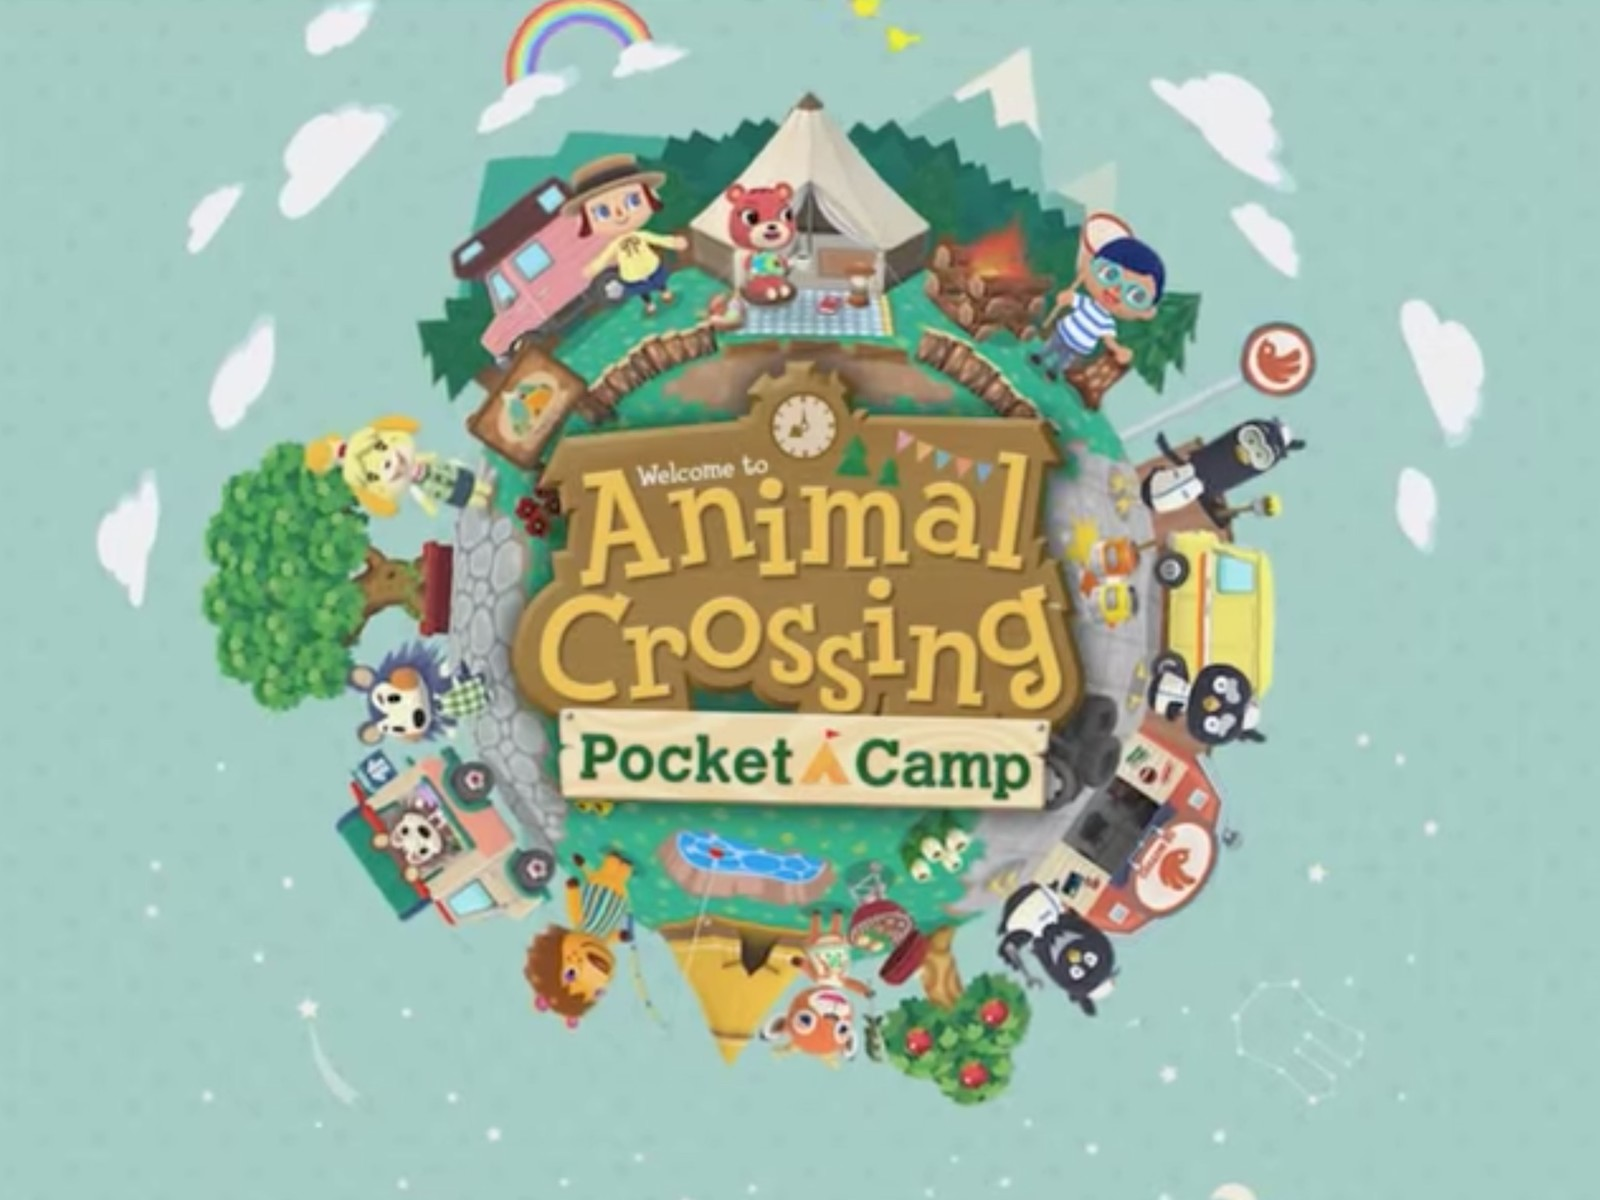 Animal-Crossing-Pocket-Camp_0.jpg